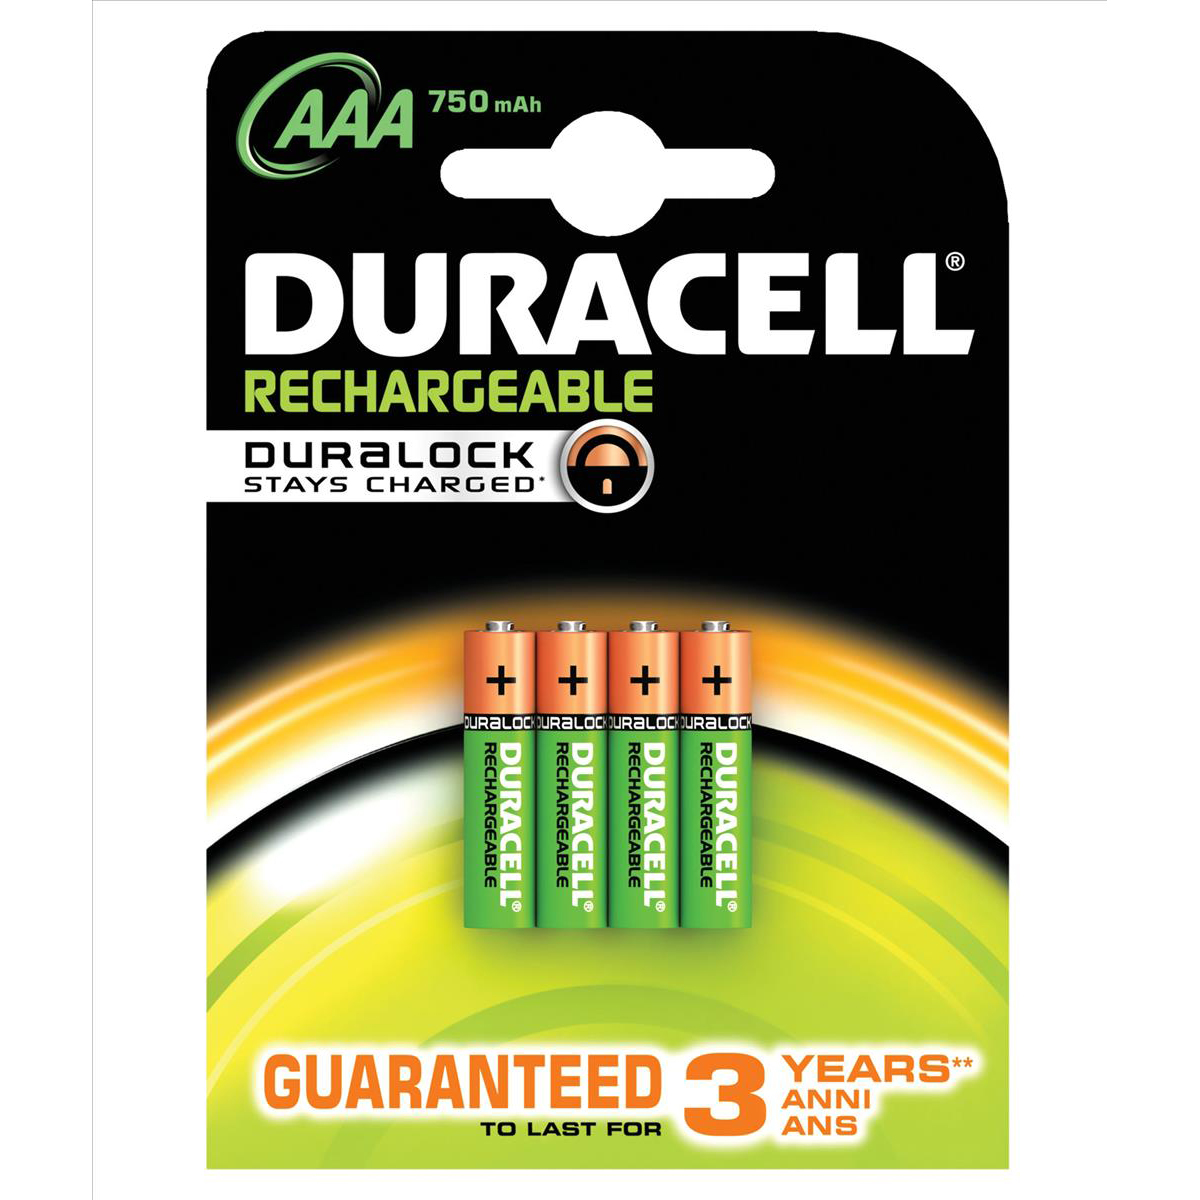 Accu Rechargeable Duracell Battery Rechargeable Accu Nimh 750mah Aaa Ref 81364750